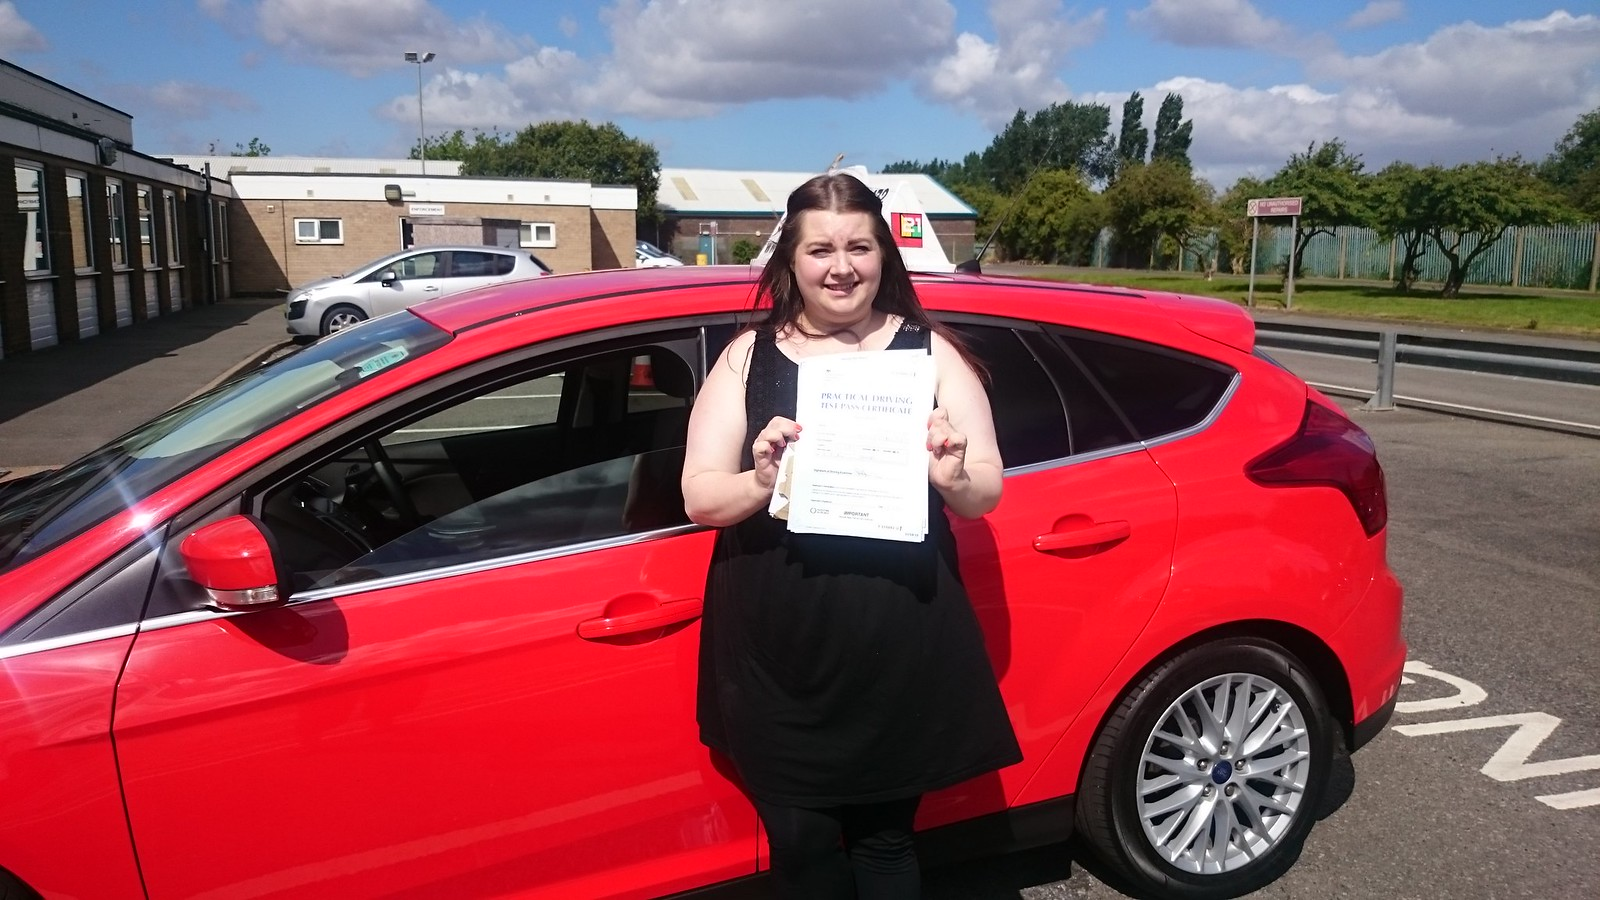 Danielle Jackson passes driving test in grimsby with 21st Century Driving